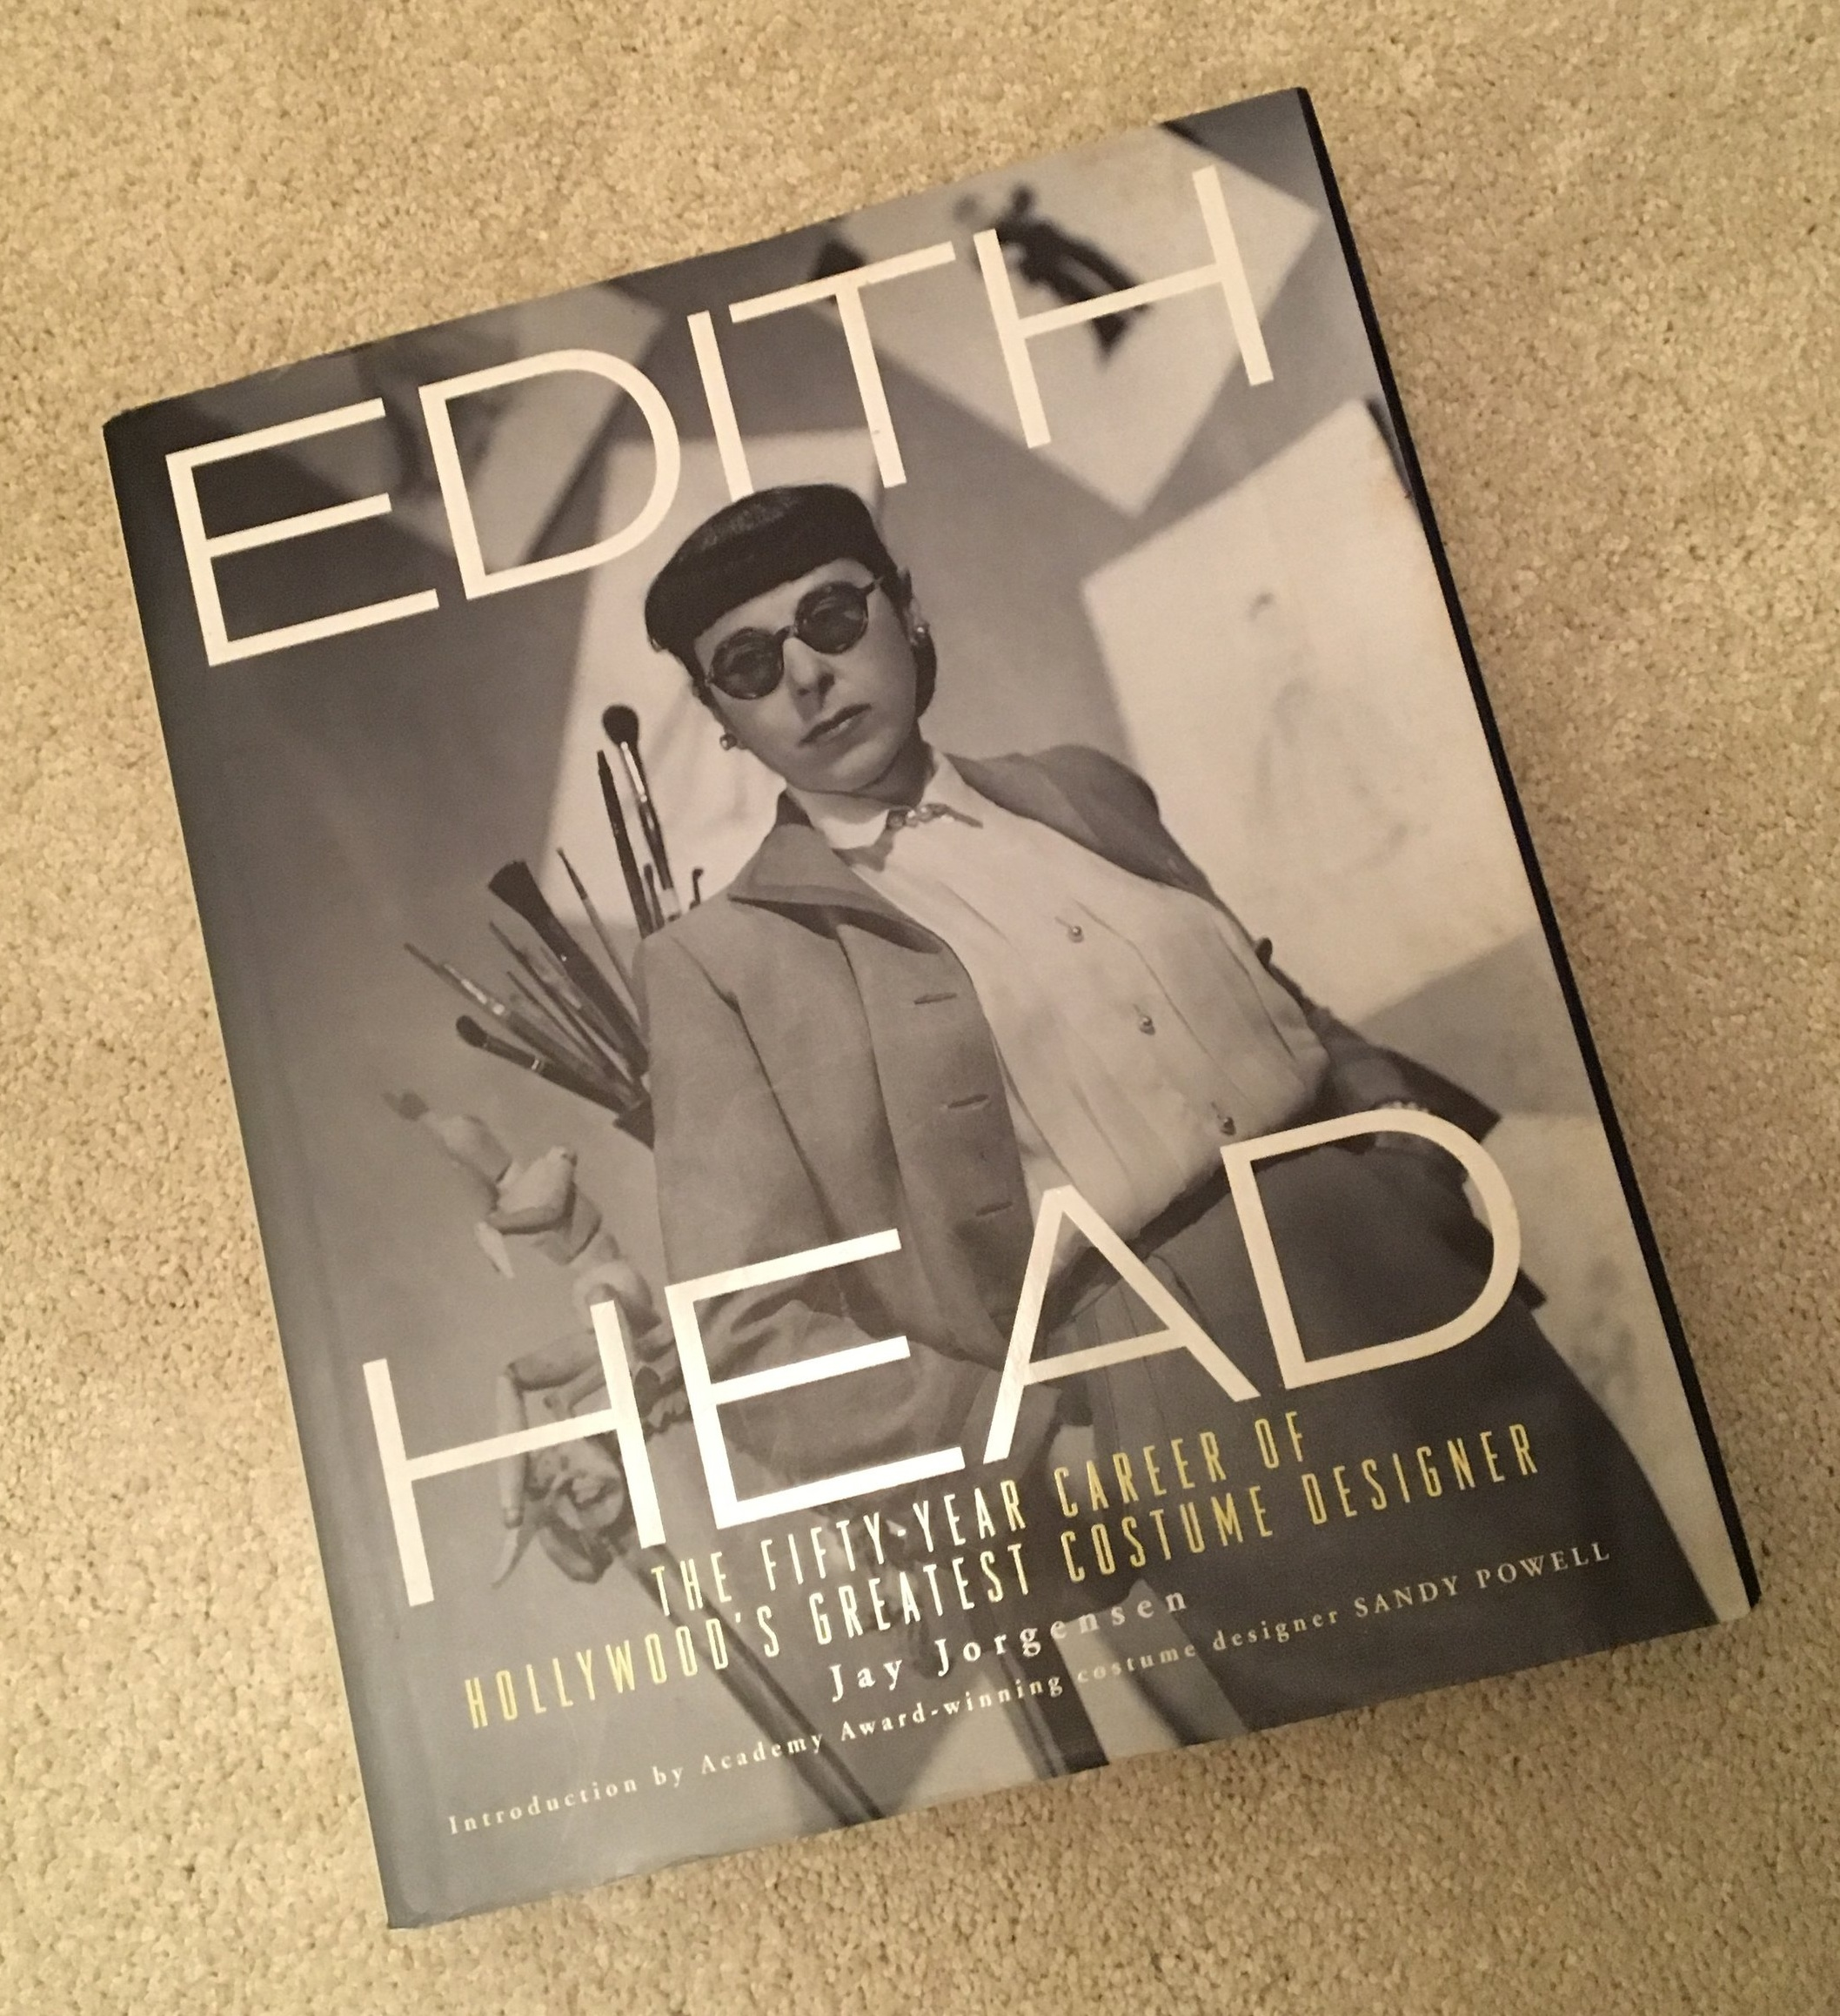 Edith Head biography by Jay Jorgensen